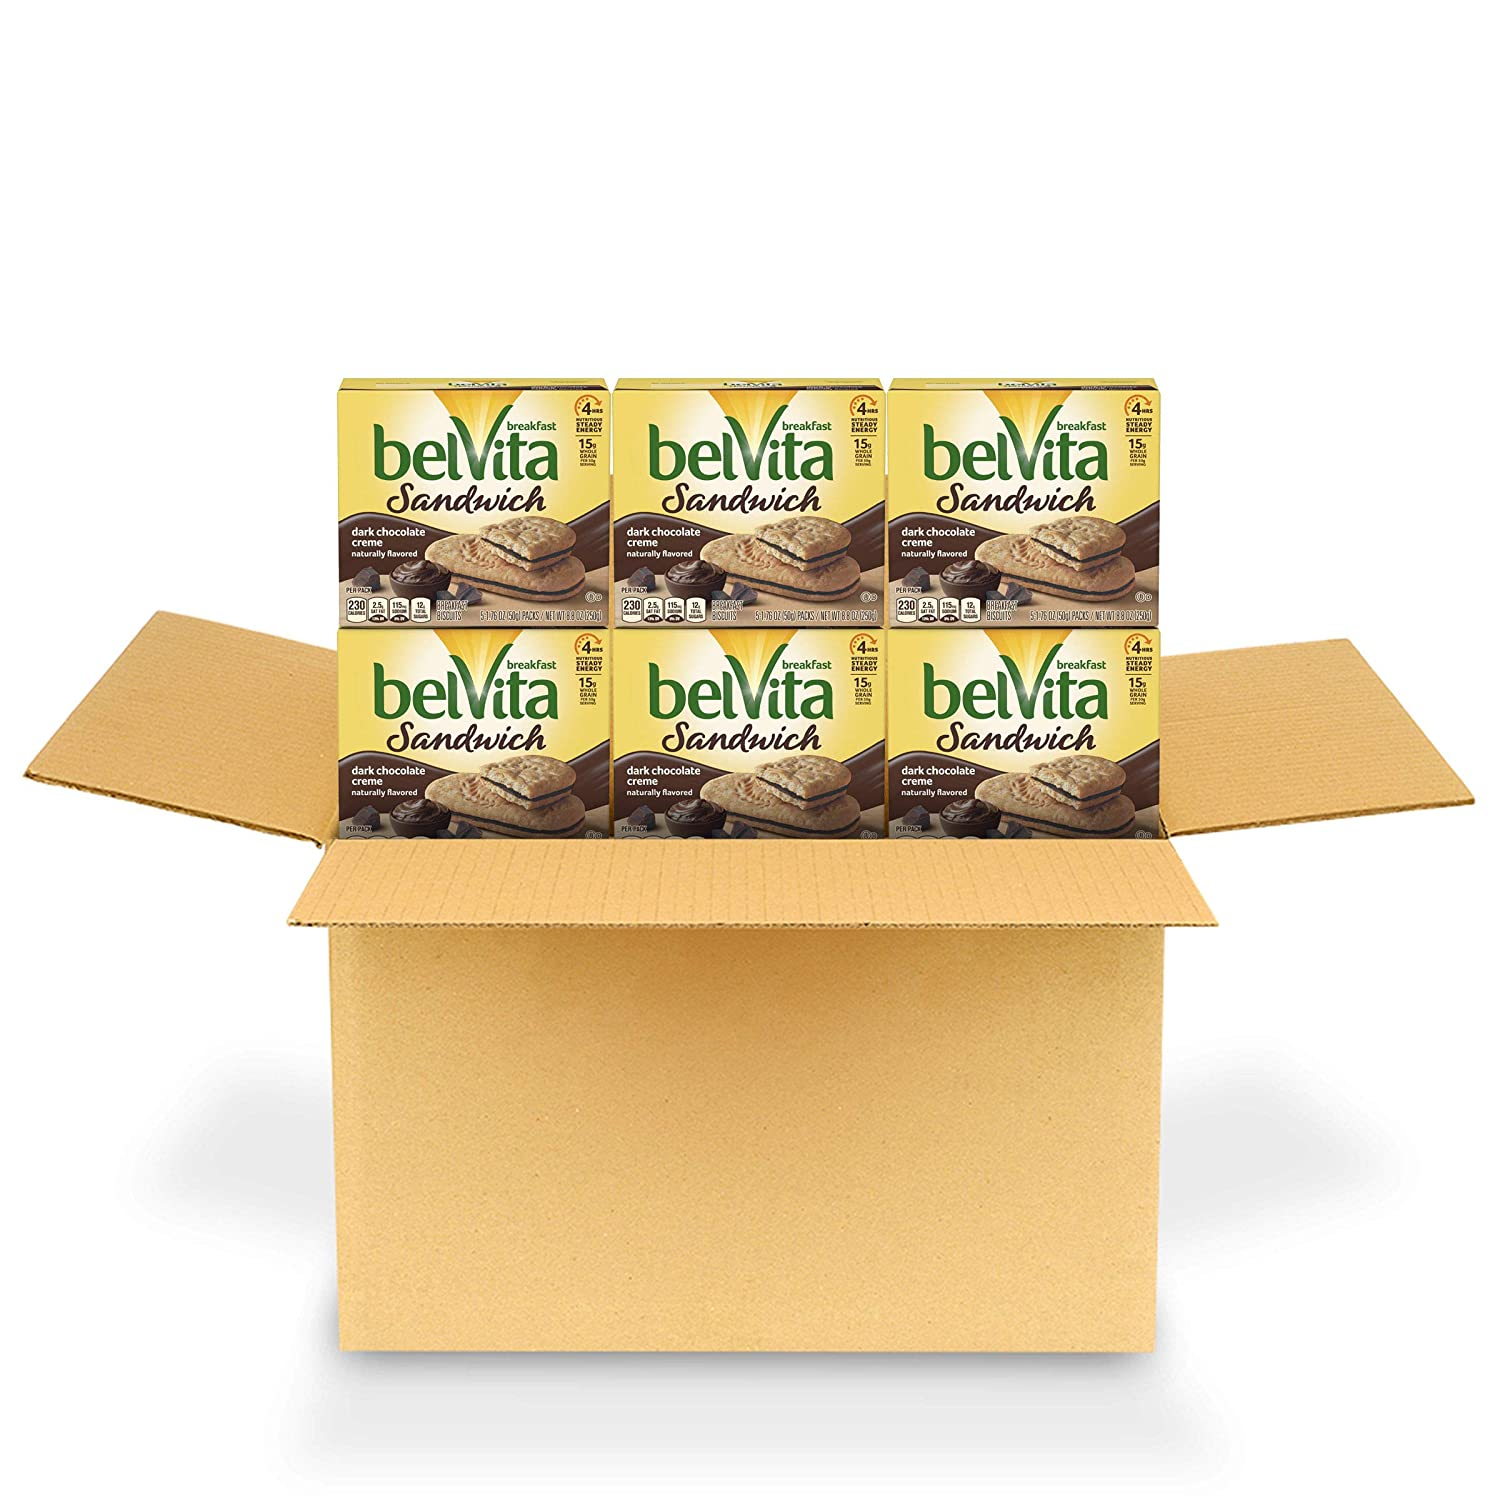 belVita Sandwich Dark Chocolate Creme Breakfast Biscuits, 6 Boxes of 5 Packs (2 Sandwiches Per Pack)